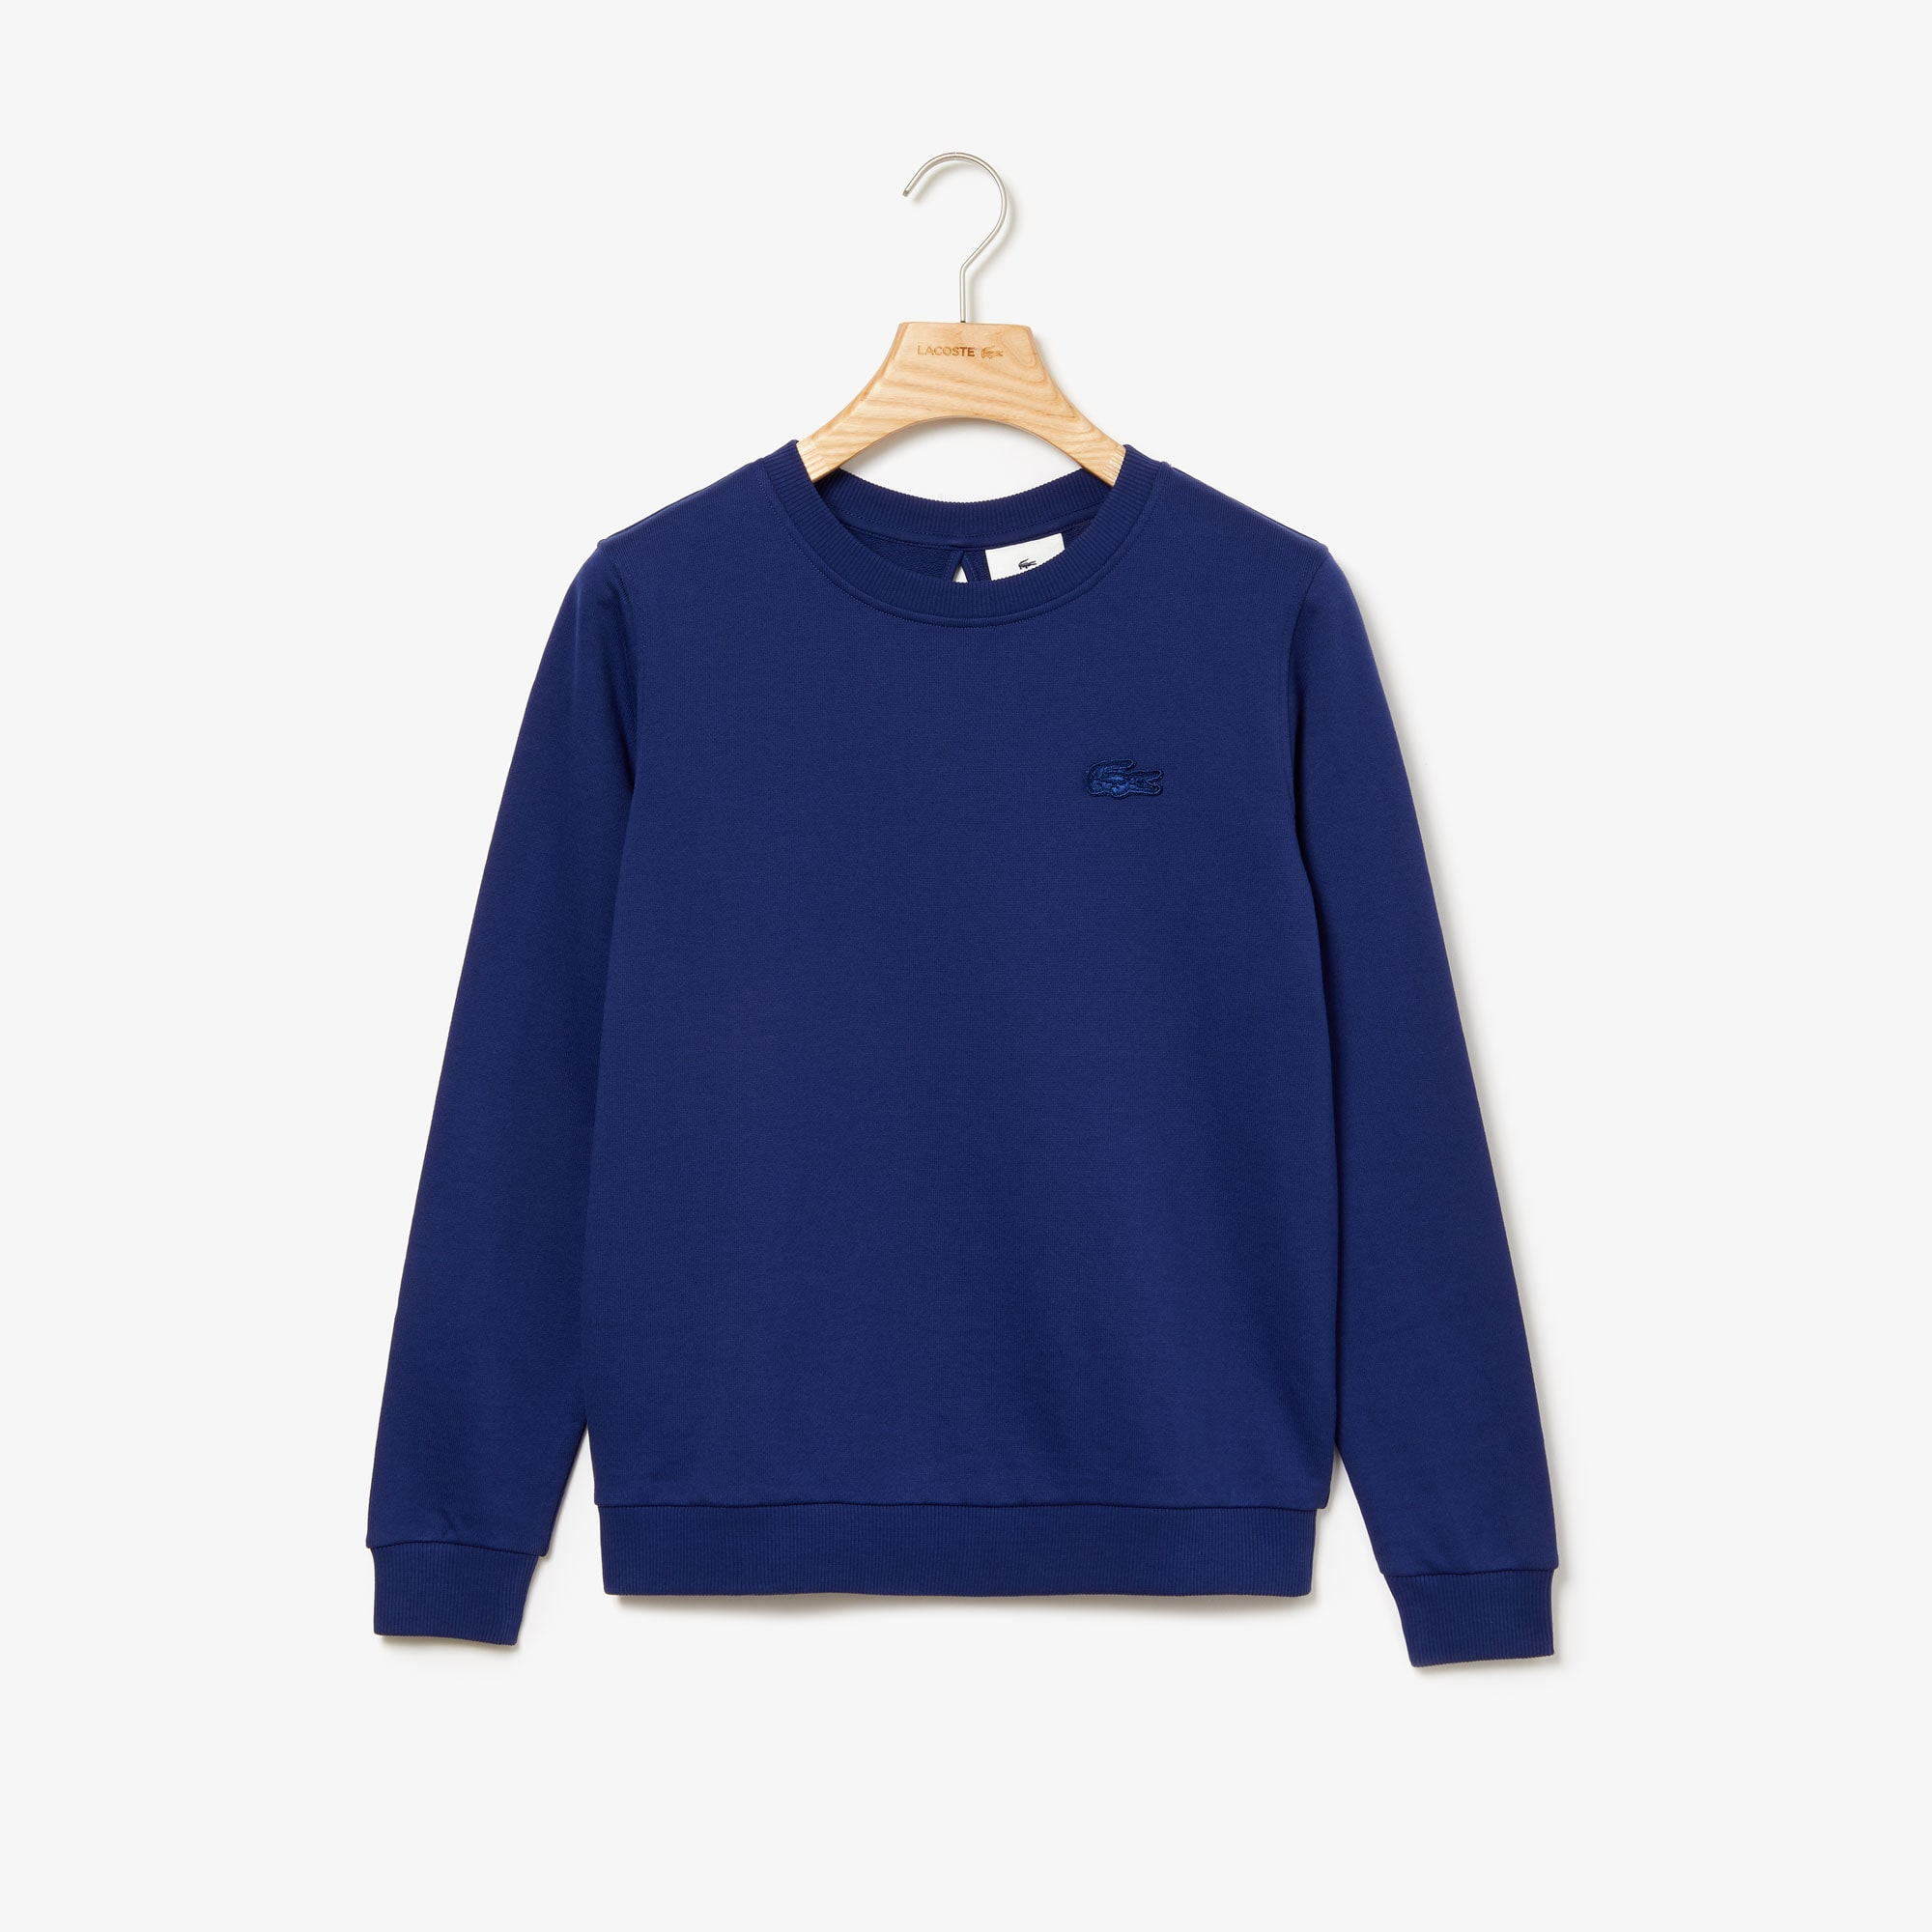 Women's LIVE Fleece Sweatshirt